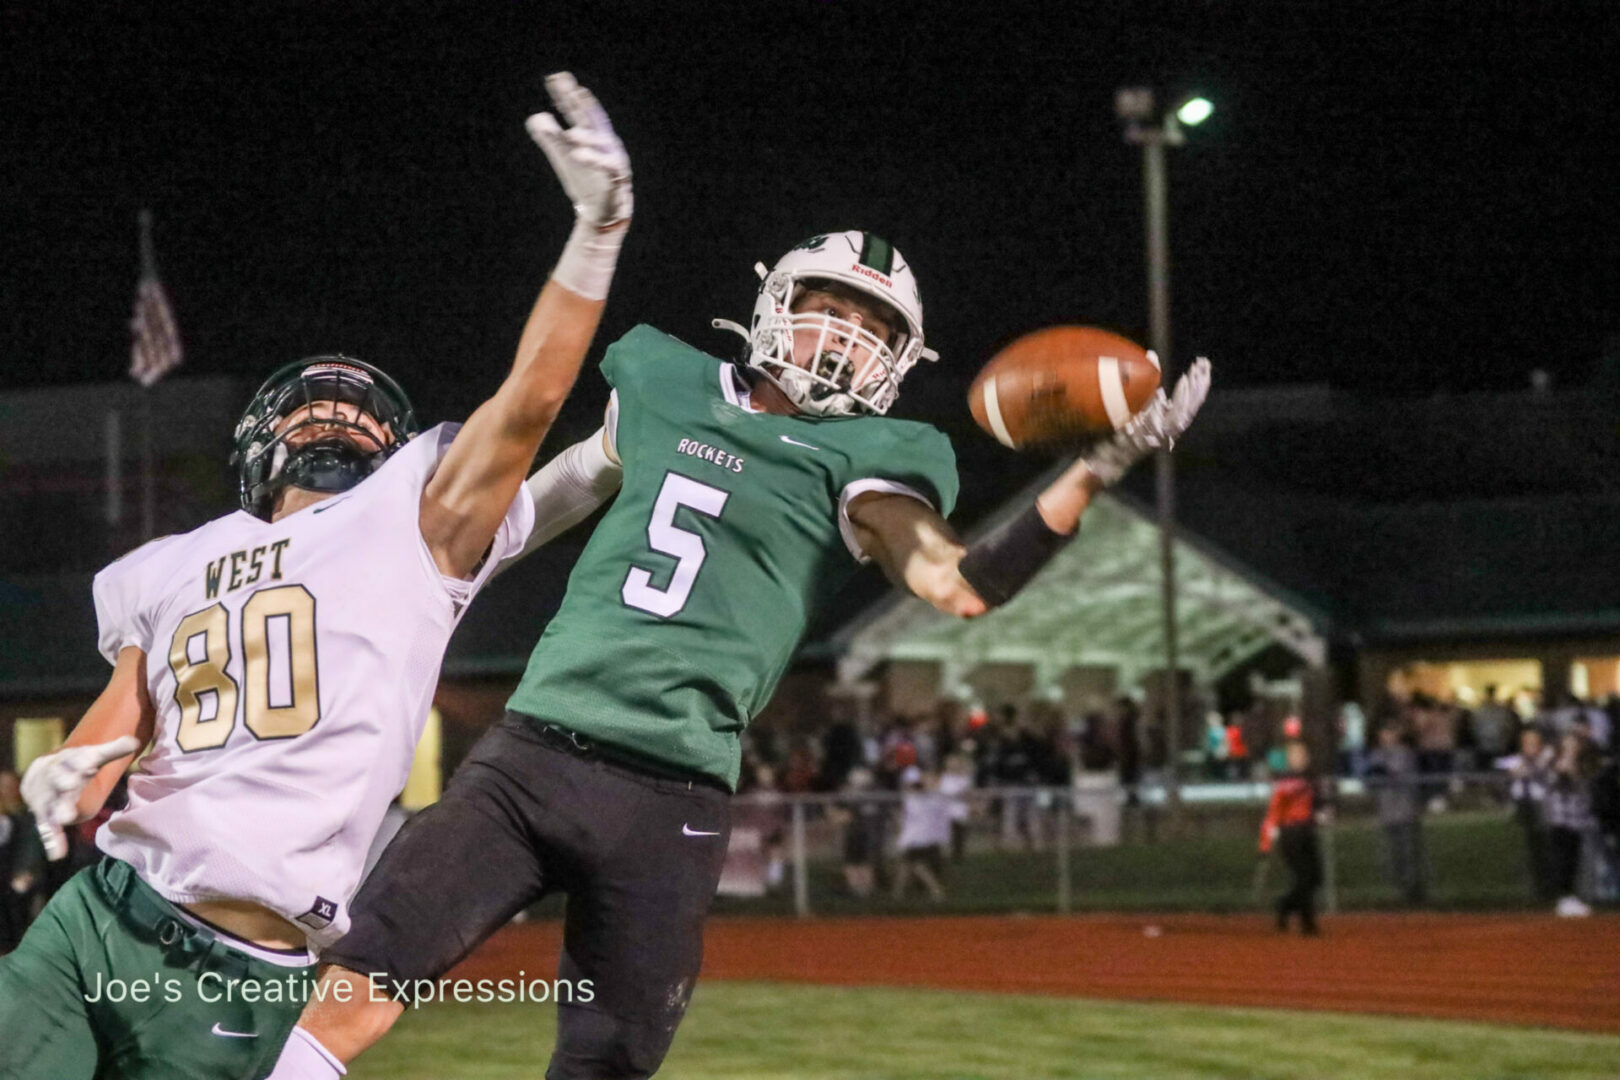 Reeths-Puffer can't hang in lopsided O-K Green loss to Zeeland West (+PHOTO GALLERY)